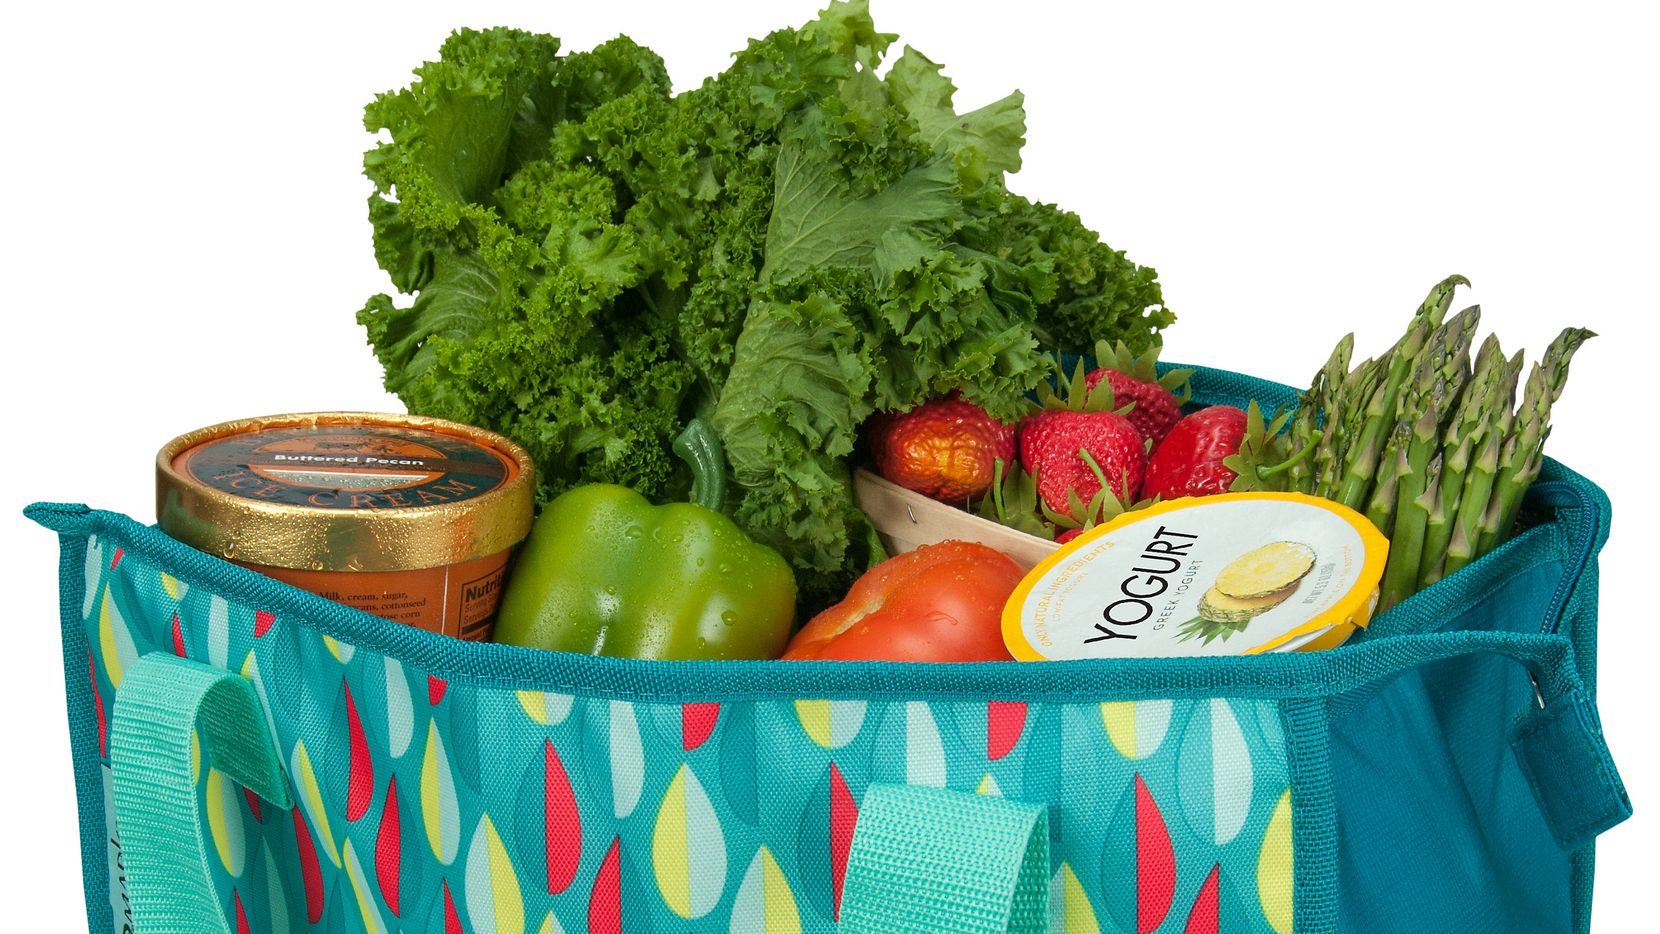 Shop with a reusable bag to cut down on plastic waste.